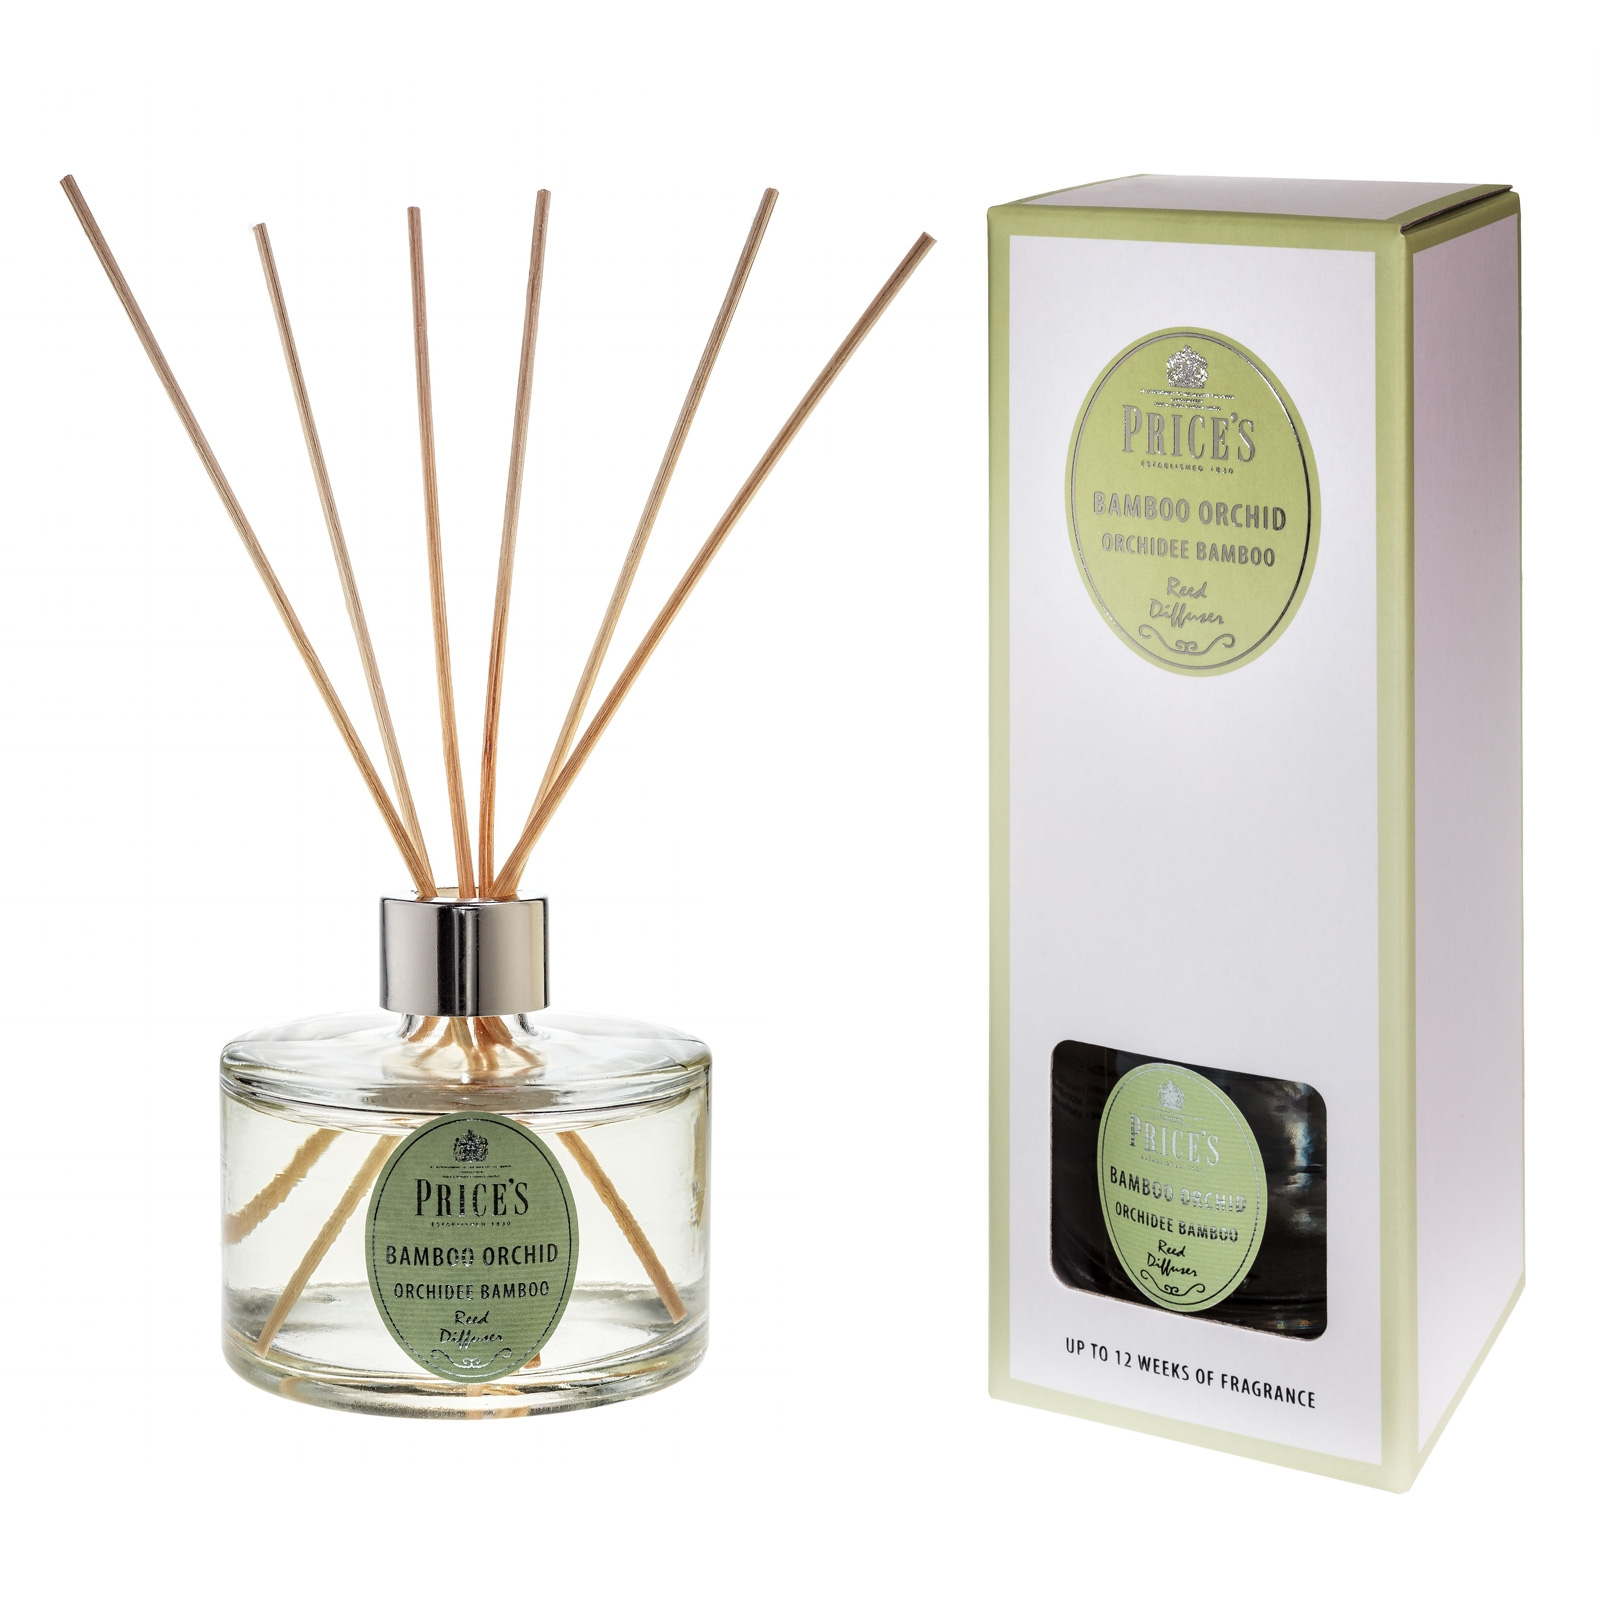 Bamboo Orchid Prices Signature 250ml Reed Diffuser